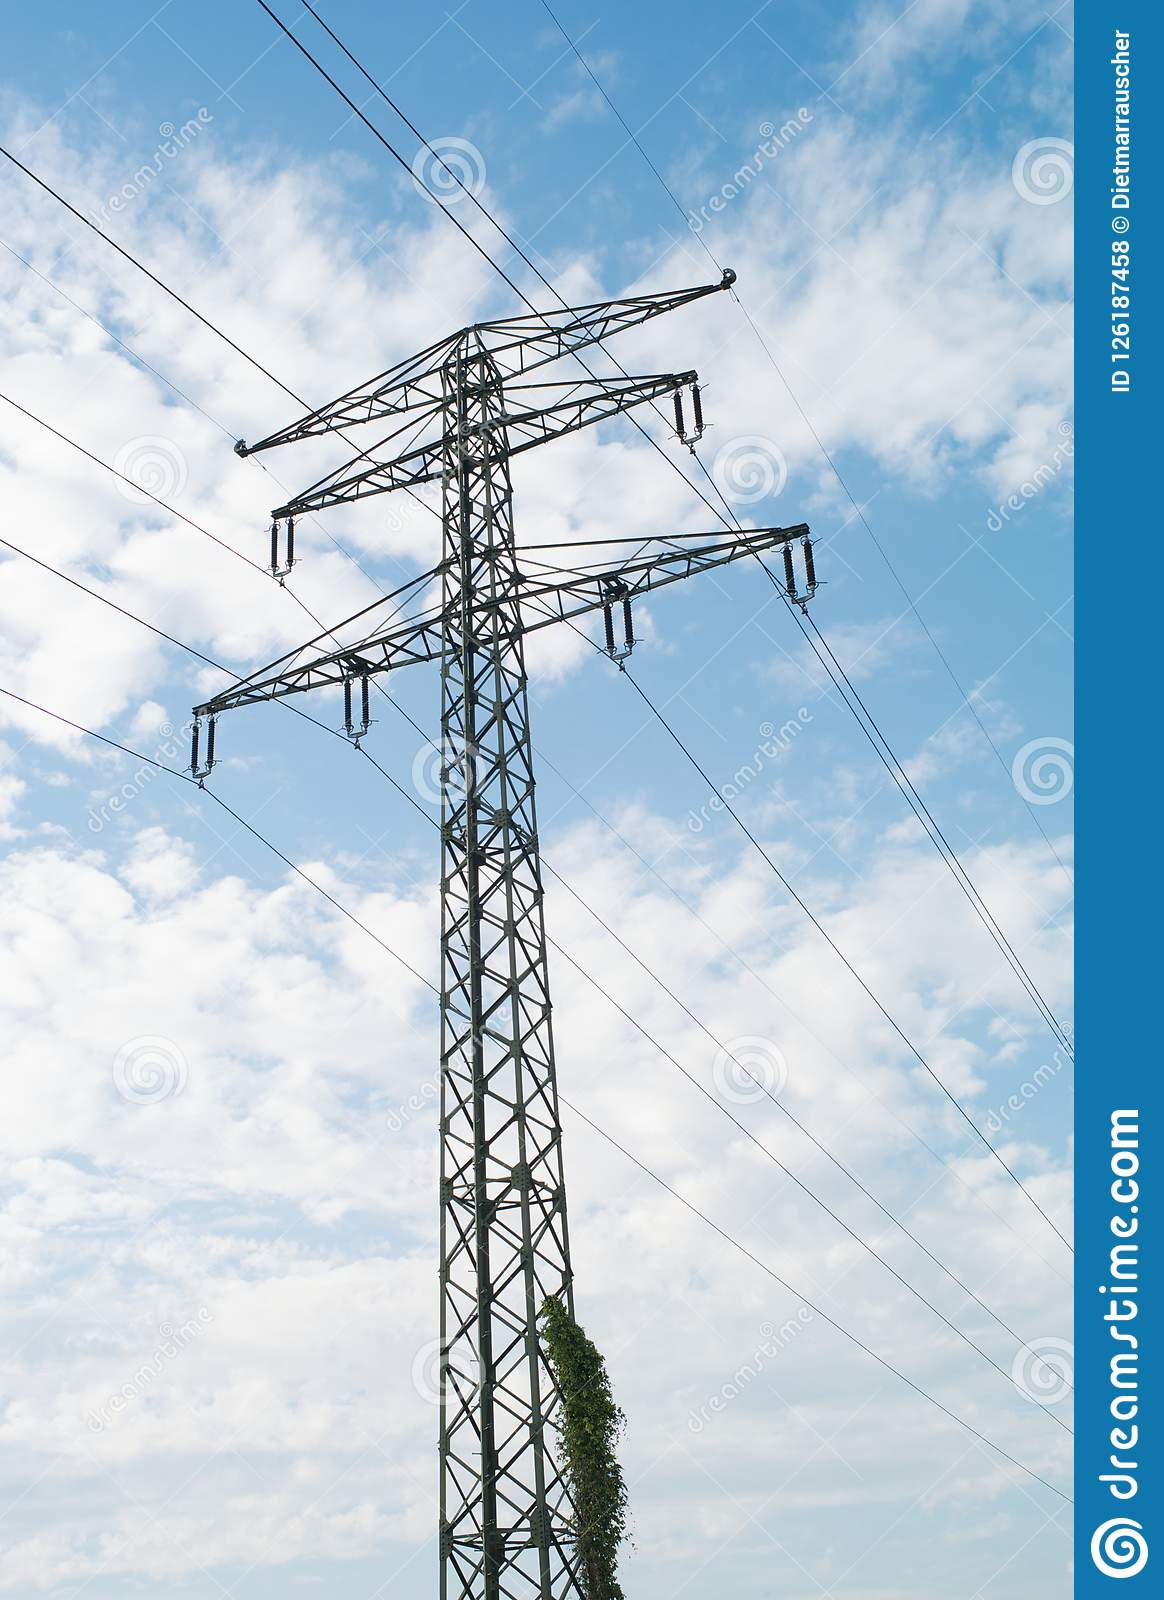 110 kV High Voltage Pylon with Two Optical Ground Wires